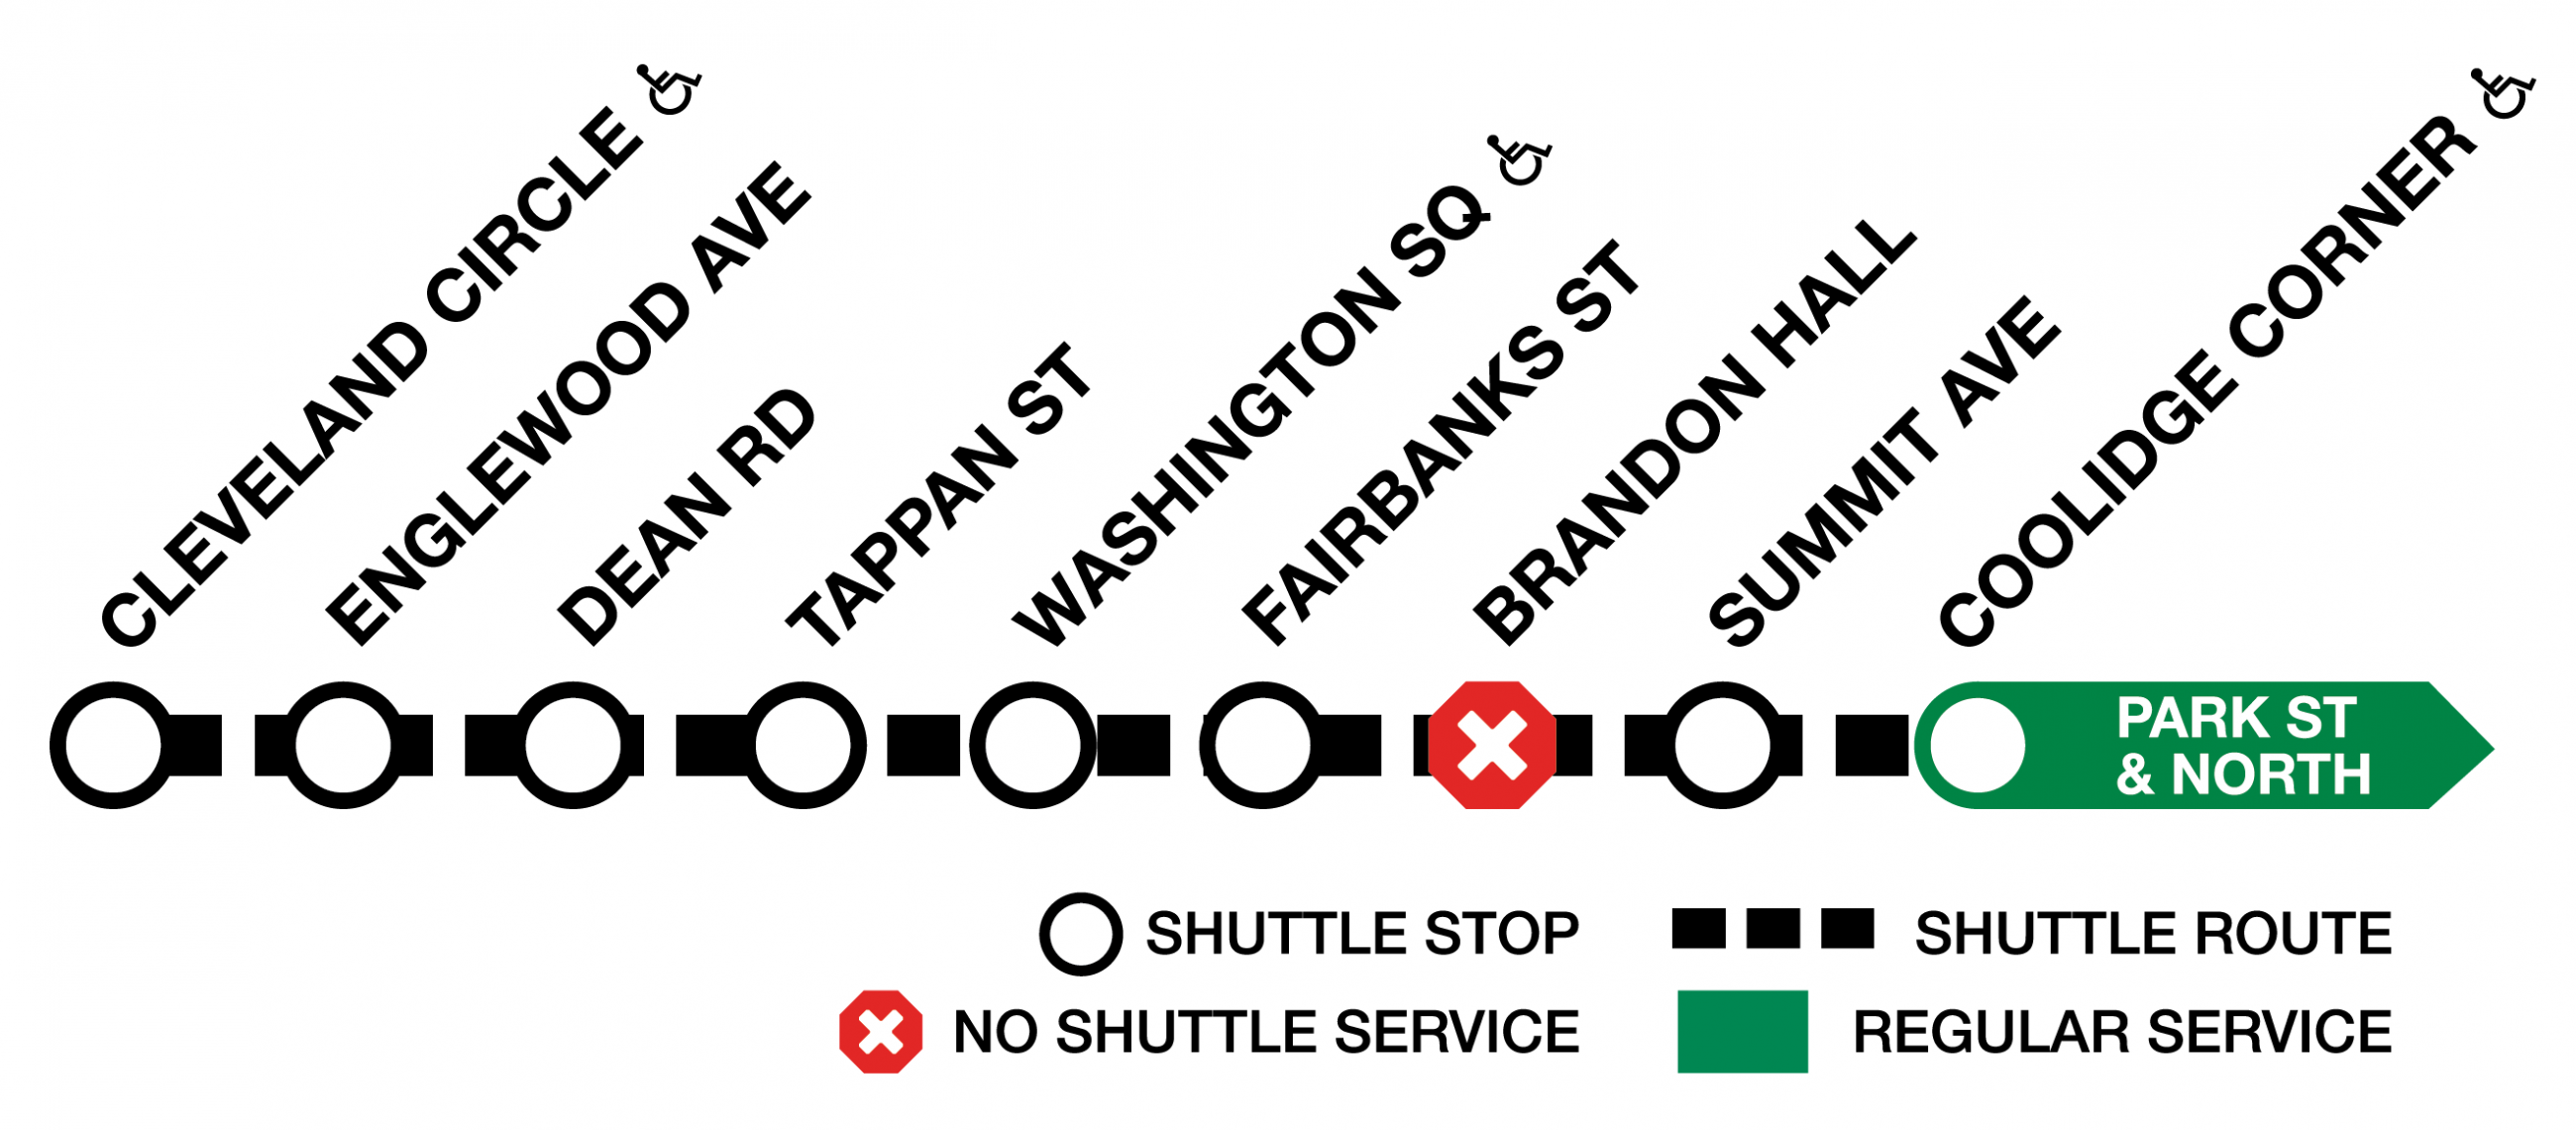 Diagram of the Green Line C Branch, showing shuttles running between Cleveland Circle and Coolidge Corner, with no shuttle service at Brandon Hall.